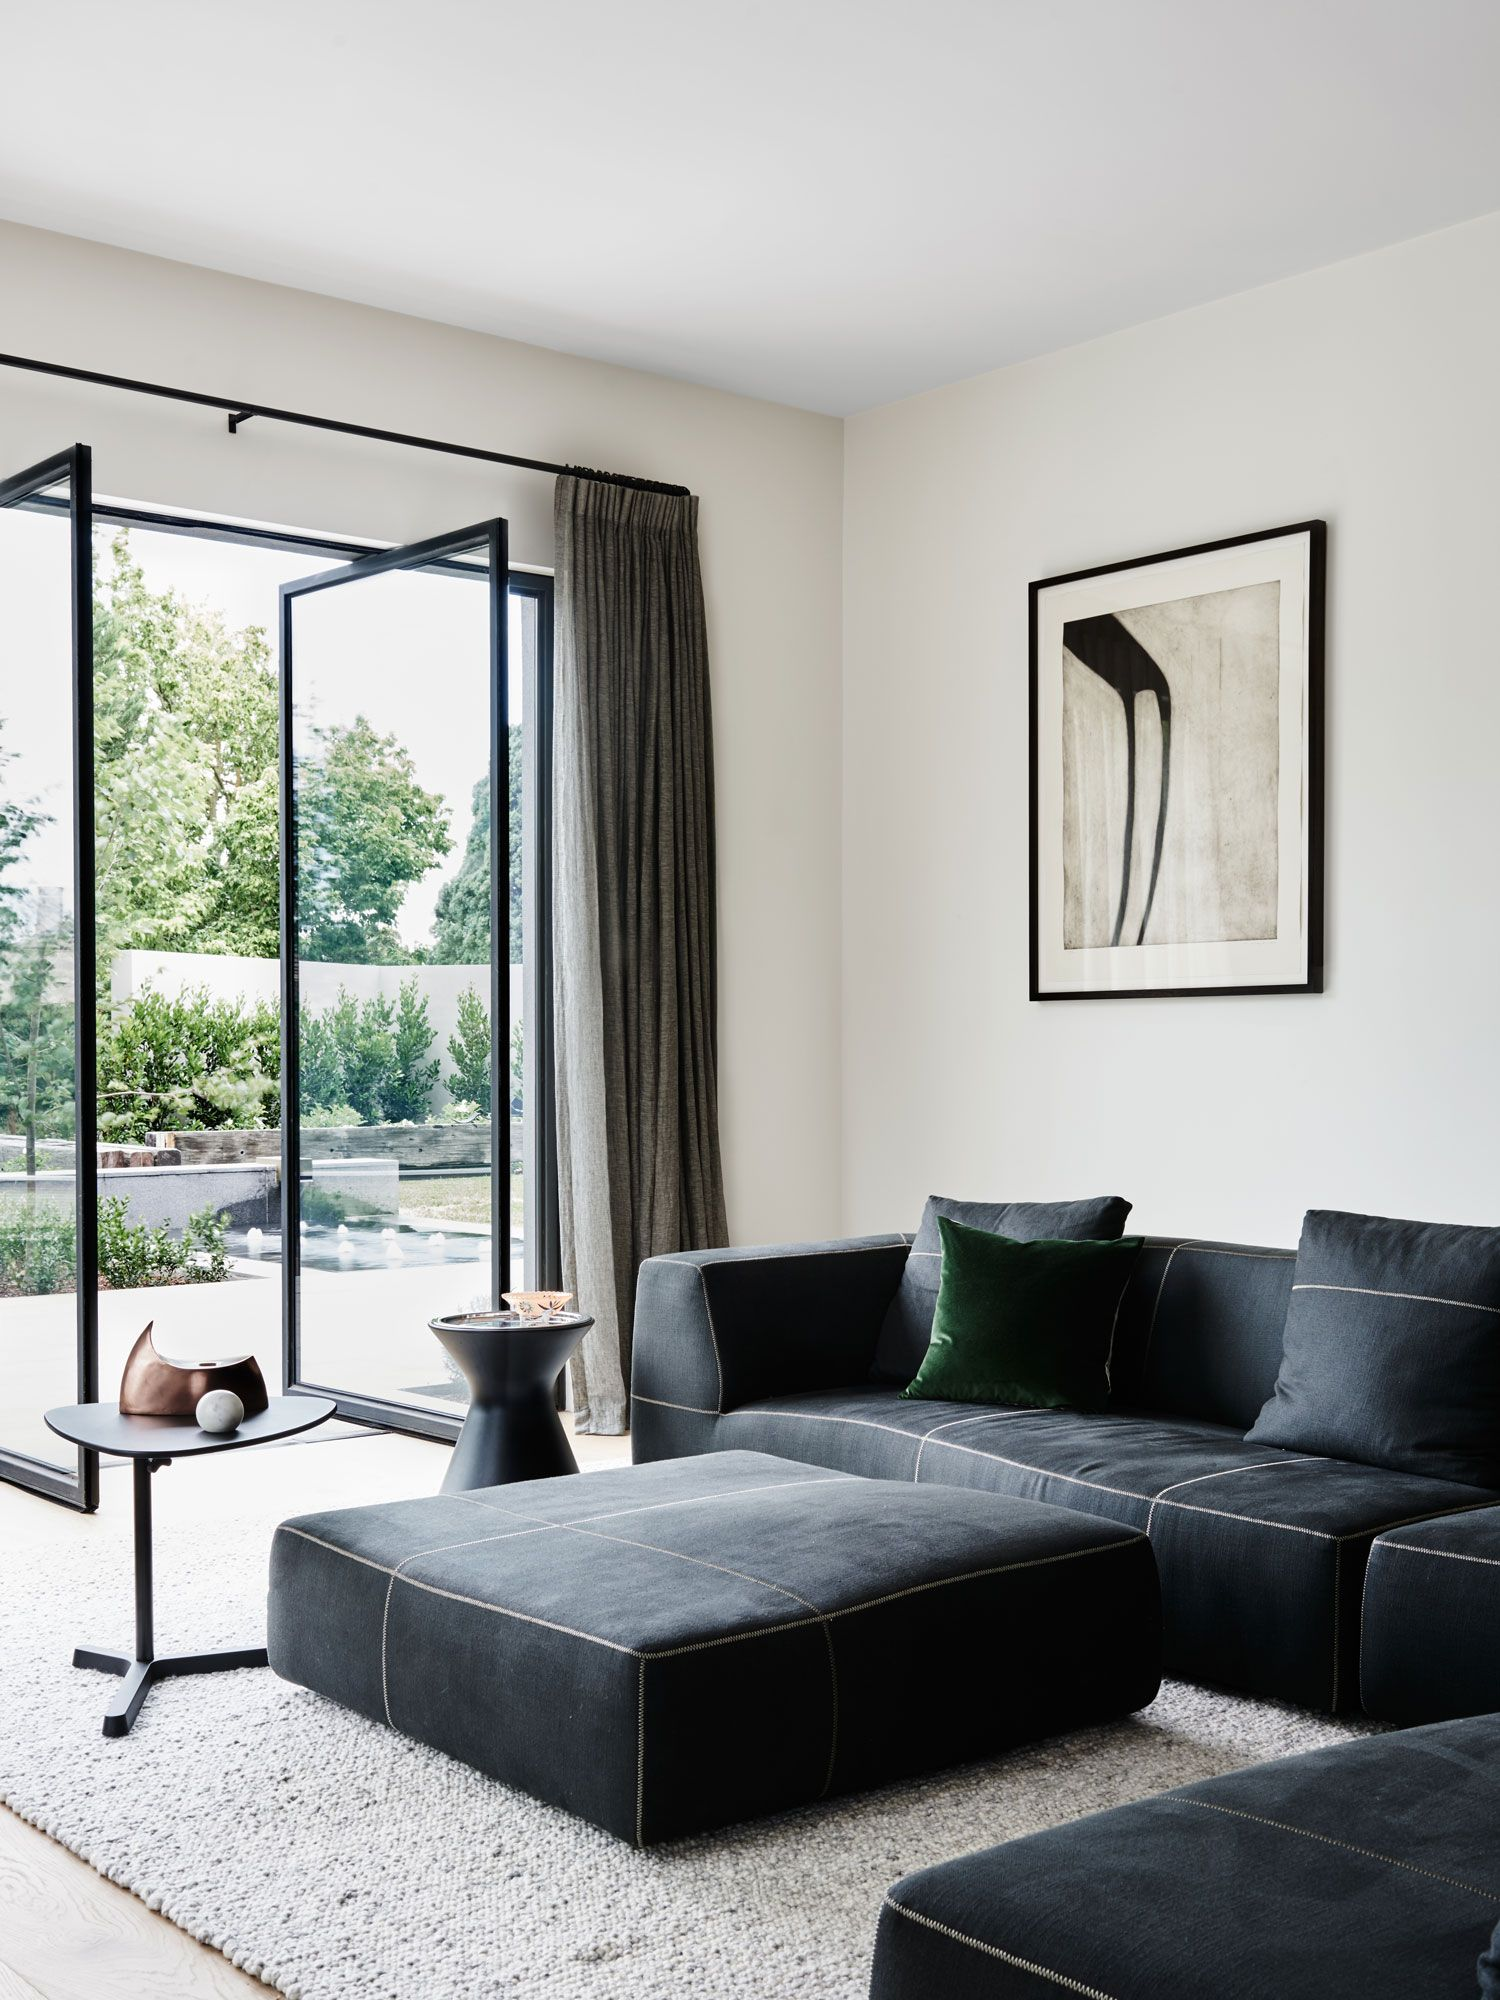 toorak2 house renovation by robson rak | zuhause, renovierung und, Gartengerate ideen